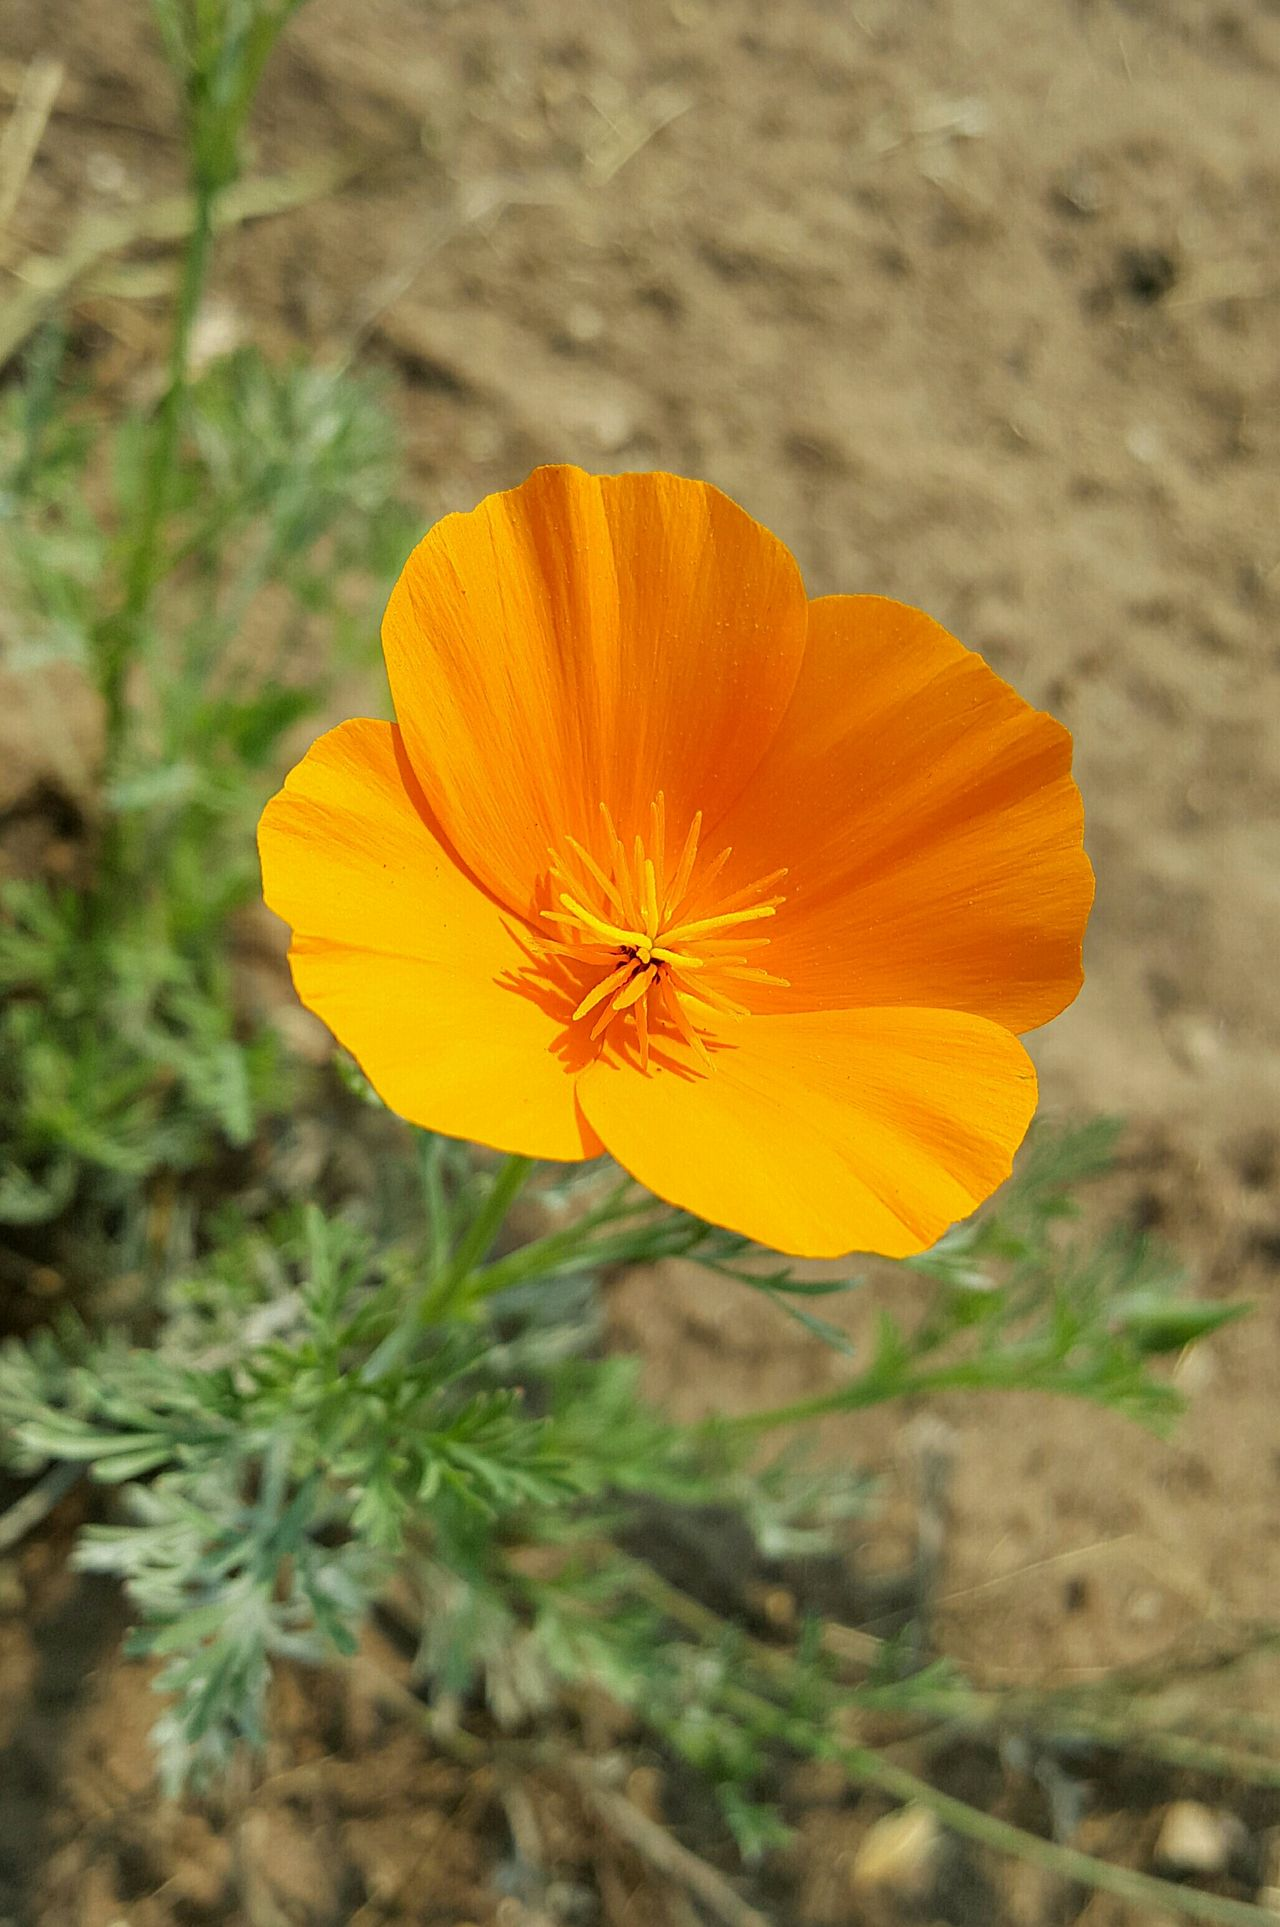 Something About The Color What Will I Find Next It Caught My Eye Central Coast, CA Orange Flower California Poppy Eye Em Learning From Nature